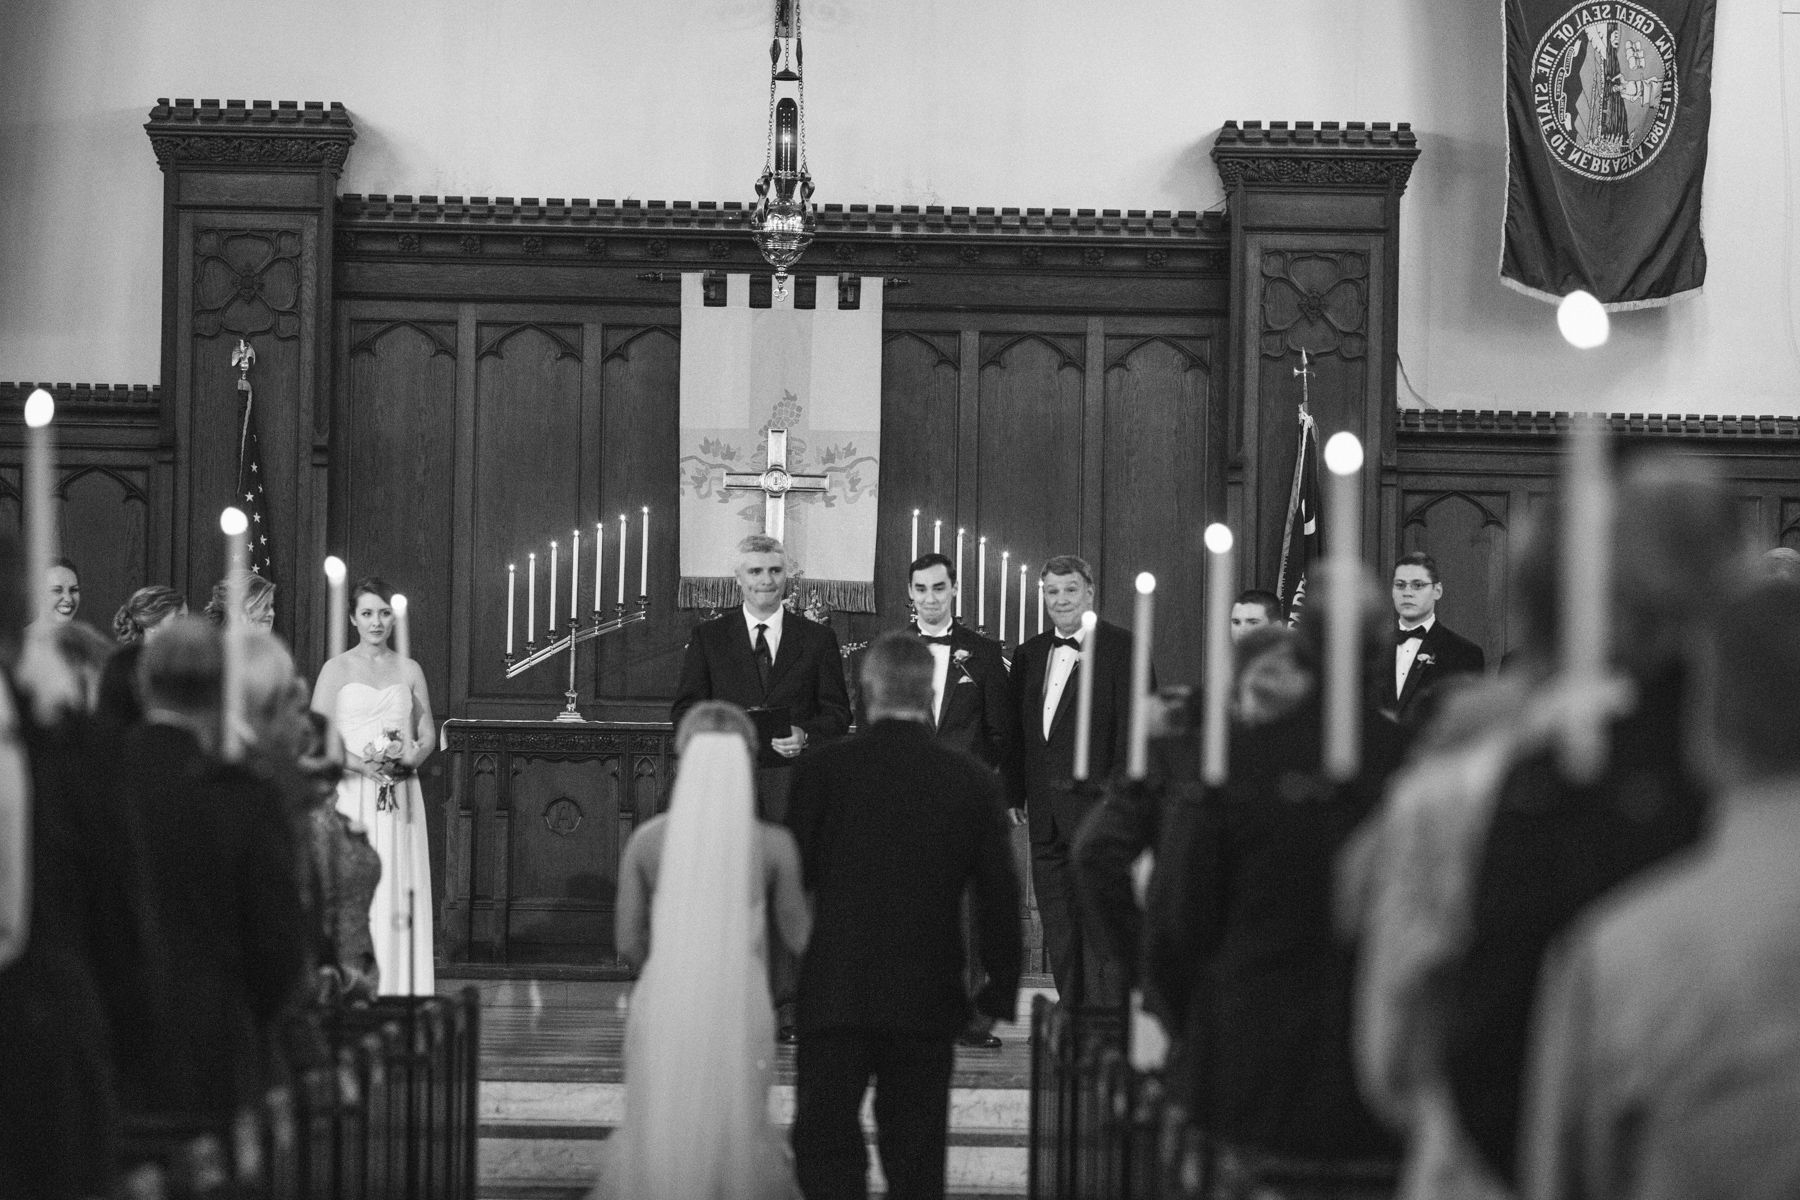 Citadel sword arch wedding